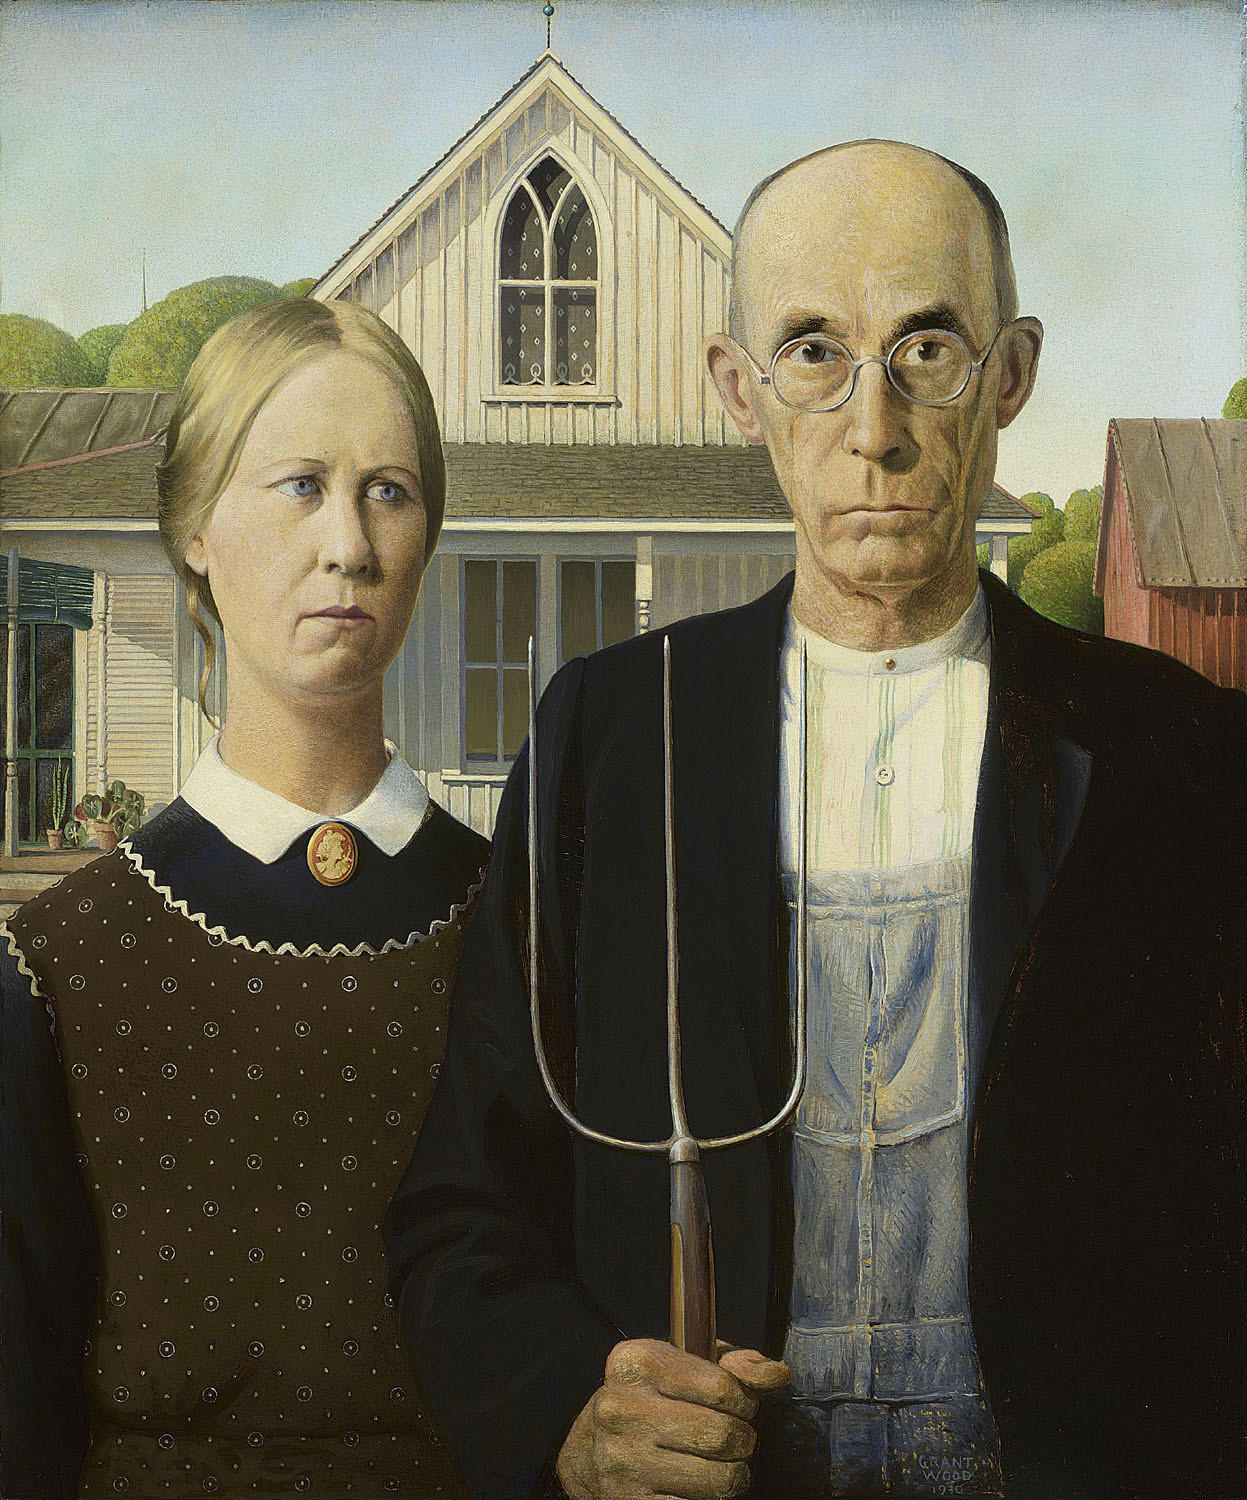 """American Gothic"" by Grant Wood."